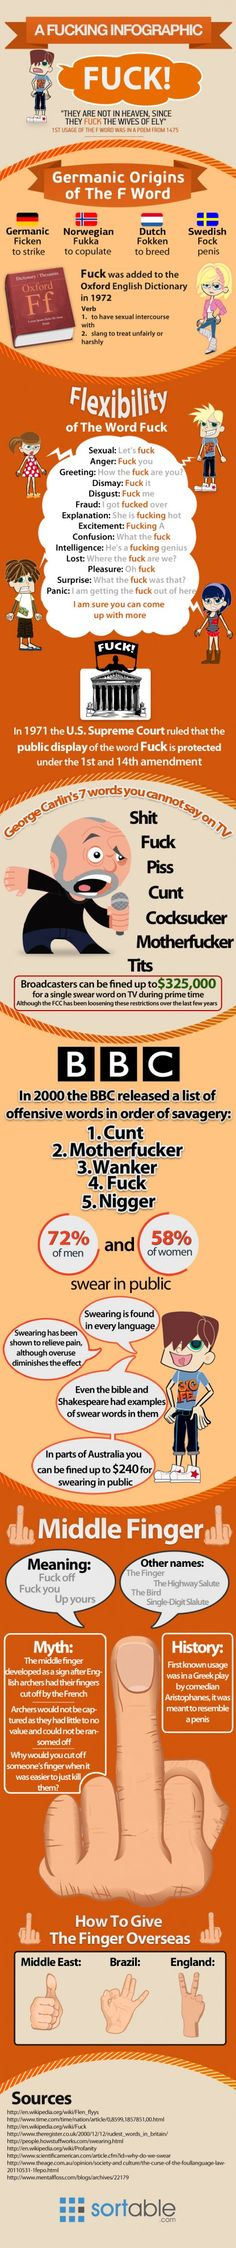 I'm glad they made an infographic for this! The origin of the F word